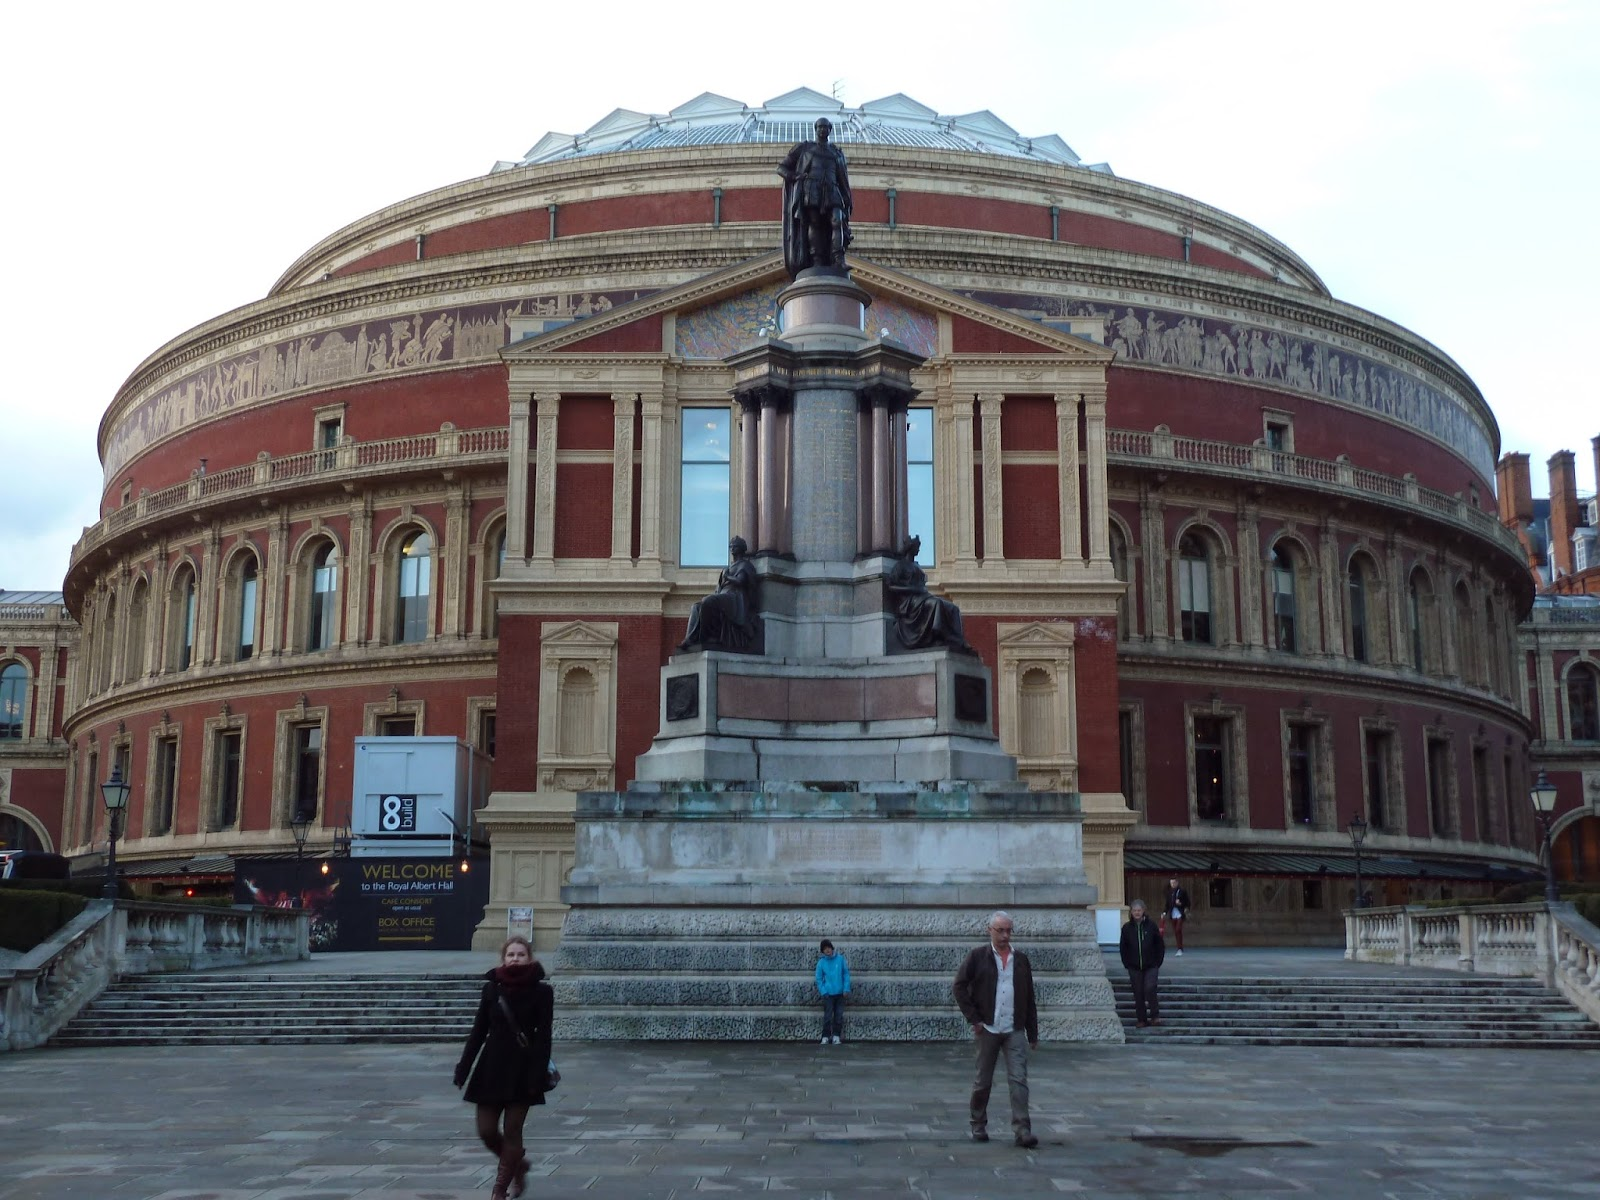 Form 7 concert halls theatres for Door 12 royal albert hall